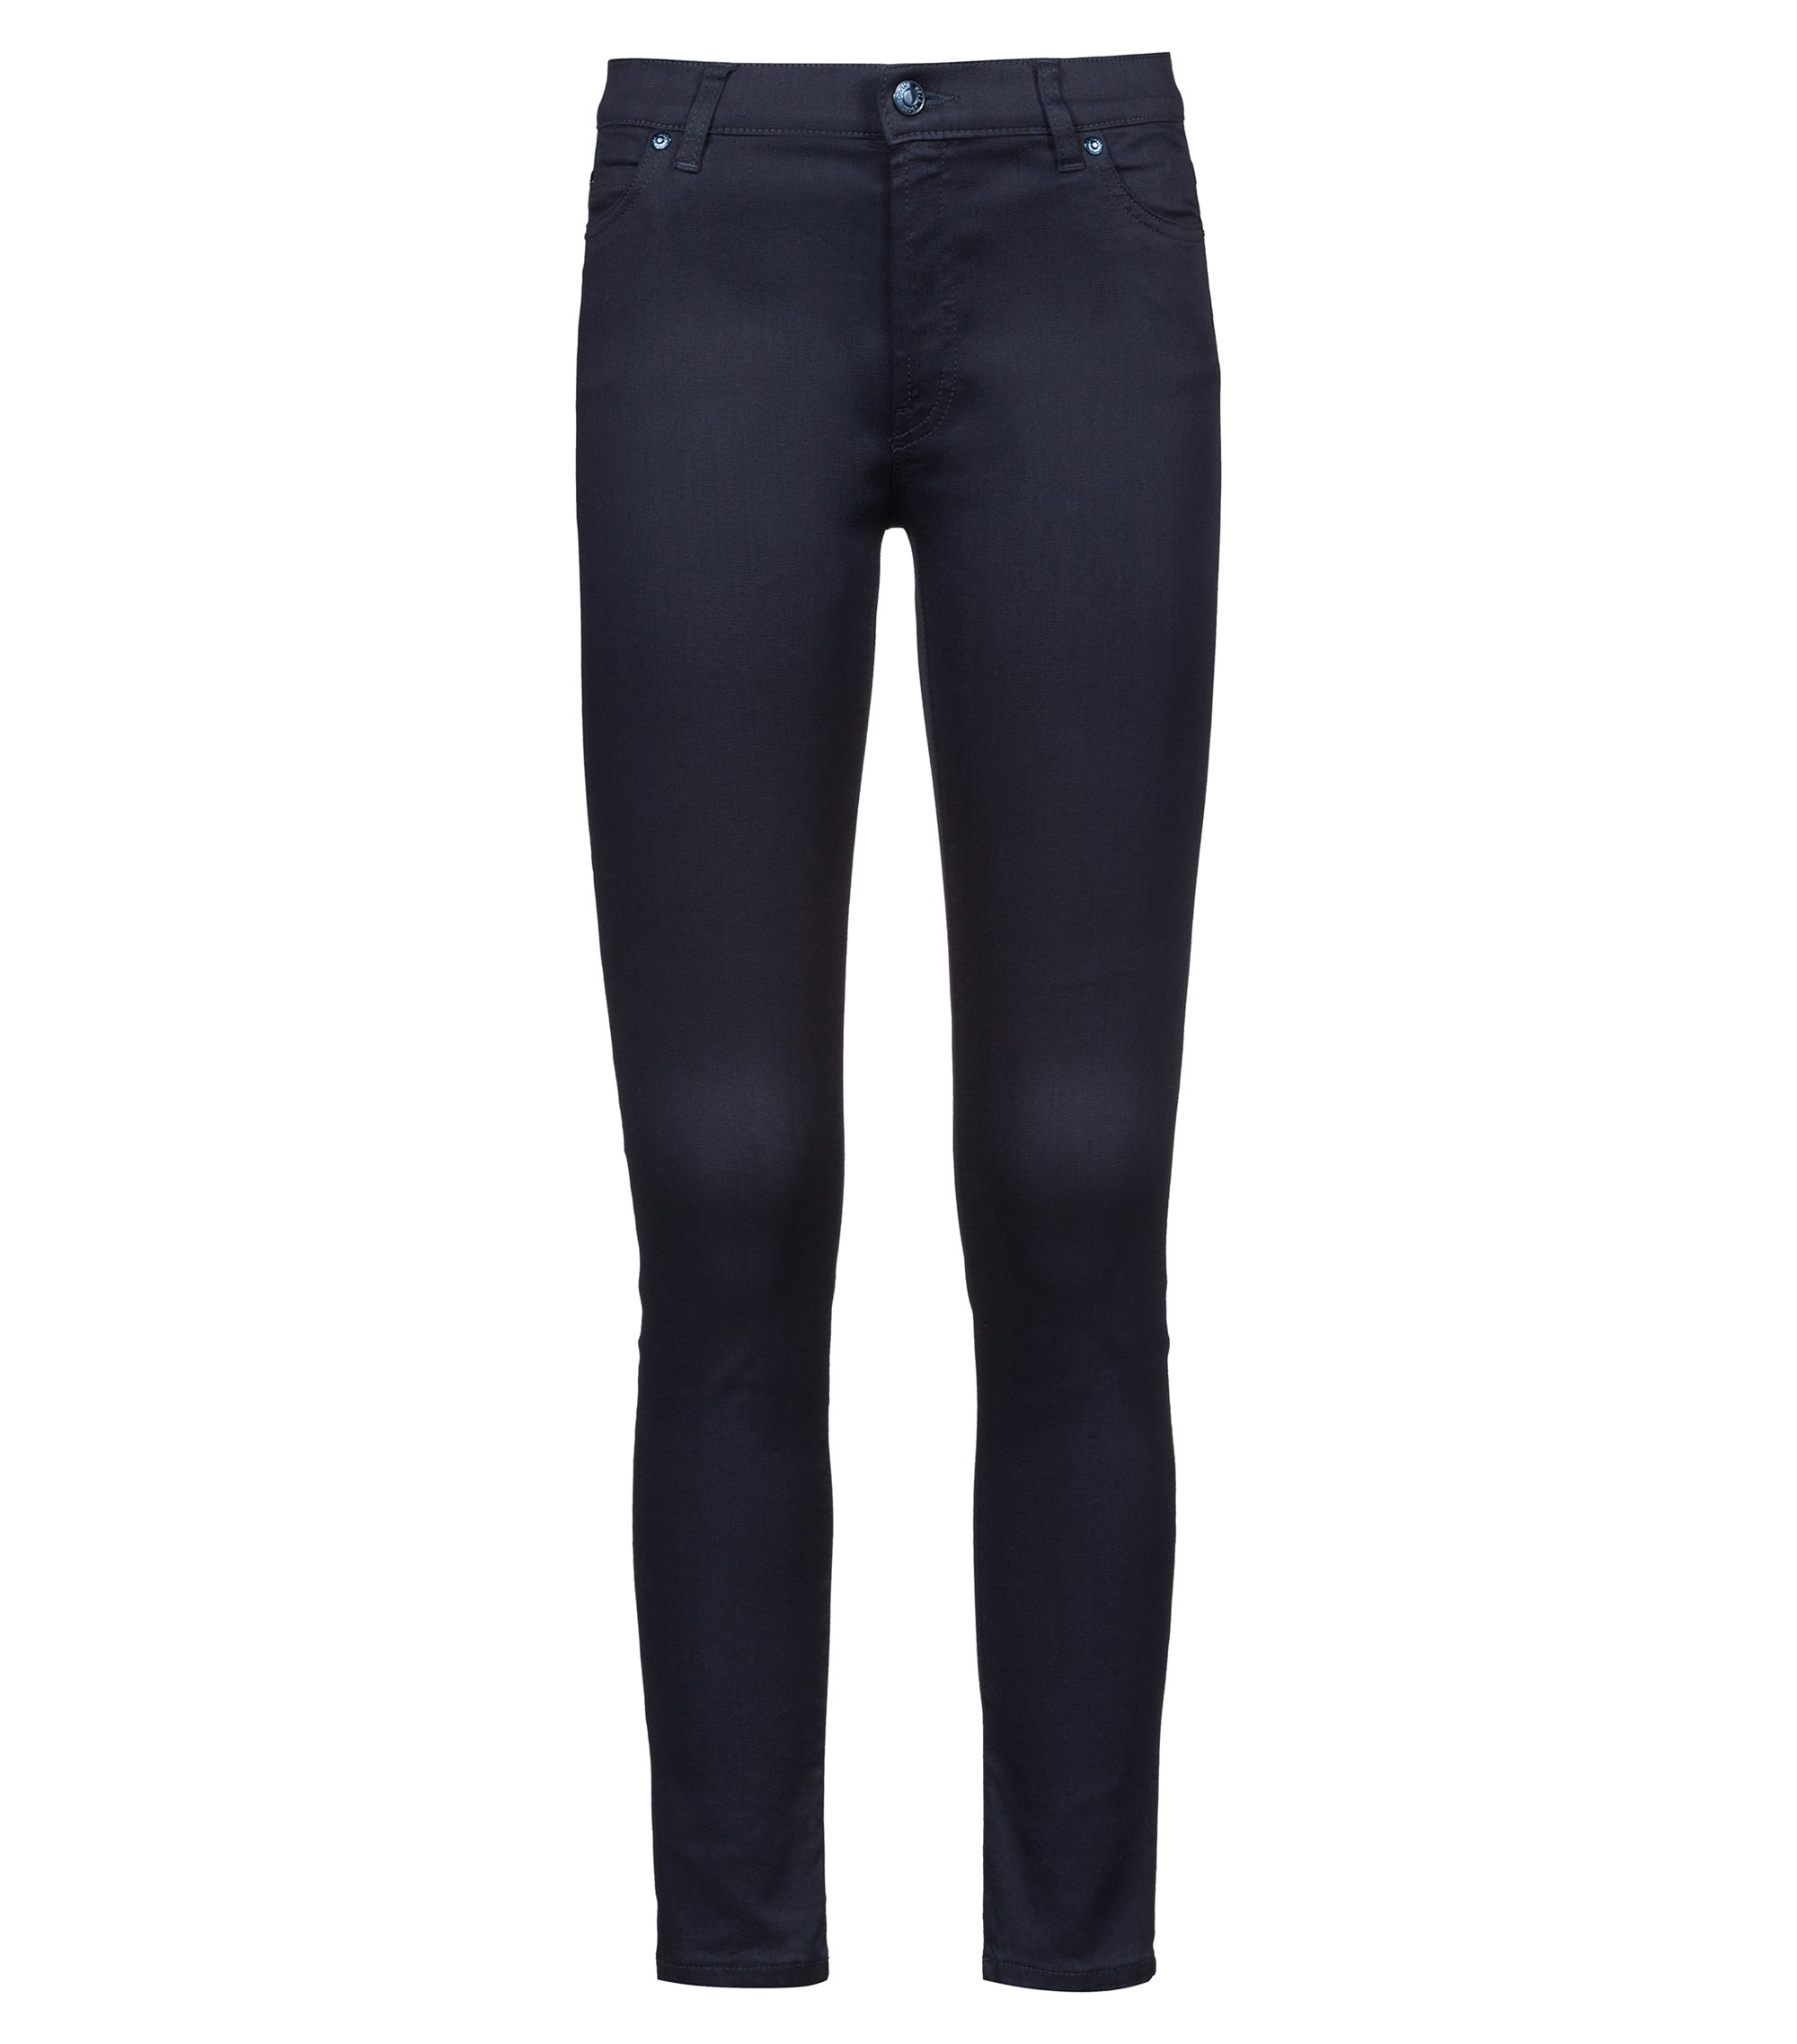 Jean Extra Slim Fit en denim Magic Flex bleu marine, Bleu foncé